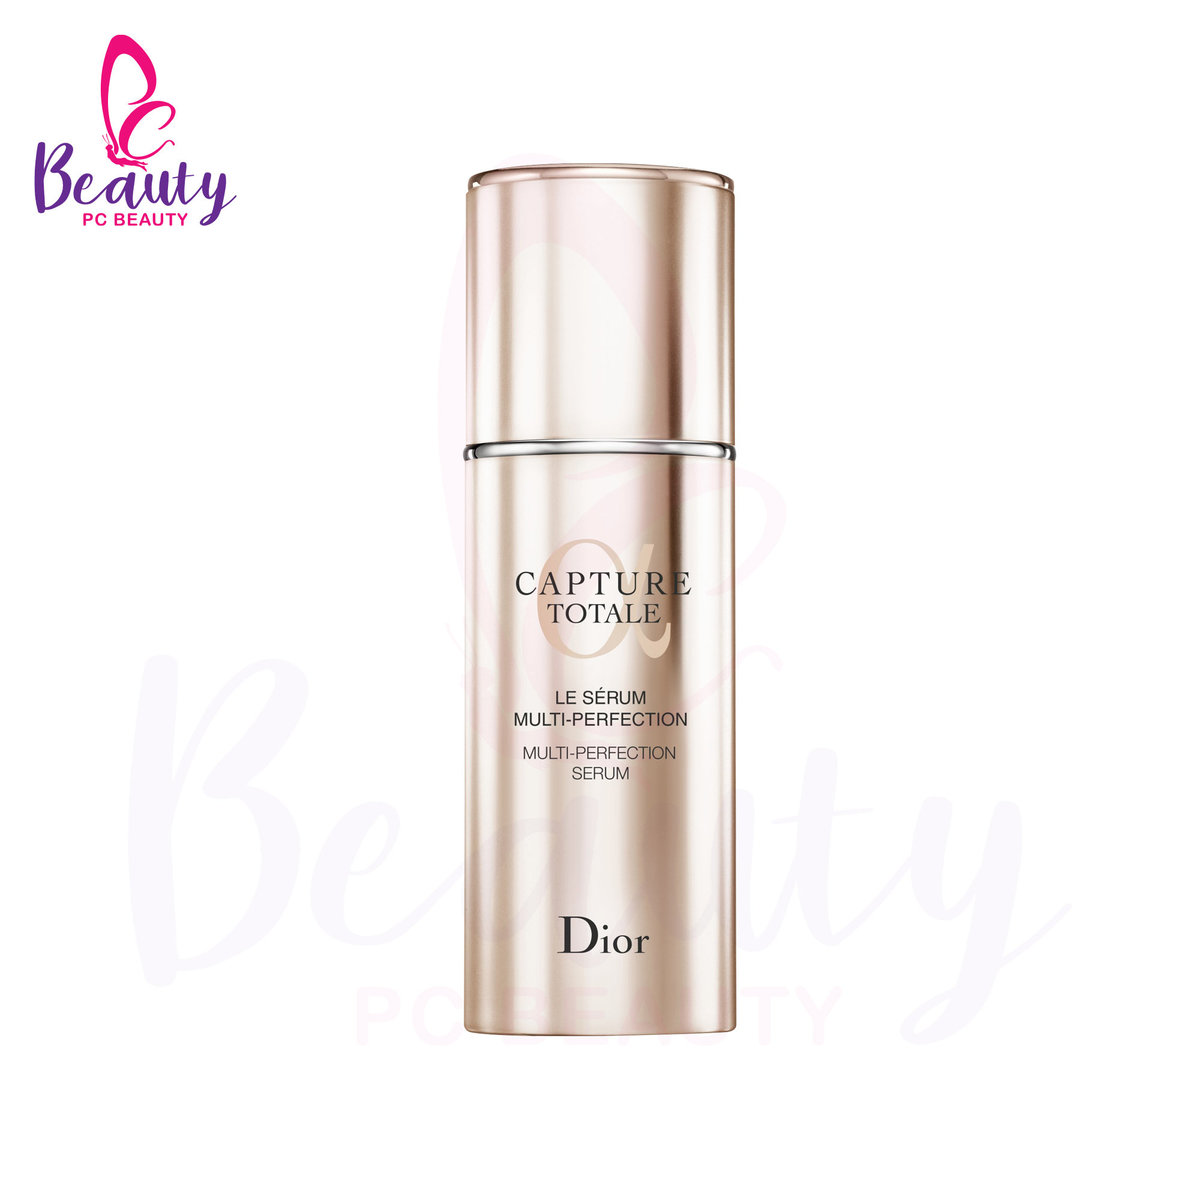 CHRISTIAN DIOR CAPTURE TOTALE MULTI-PERFECTION SERUM 50ML [Parallel Import Product]